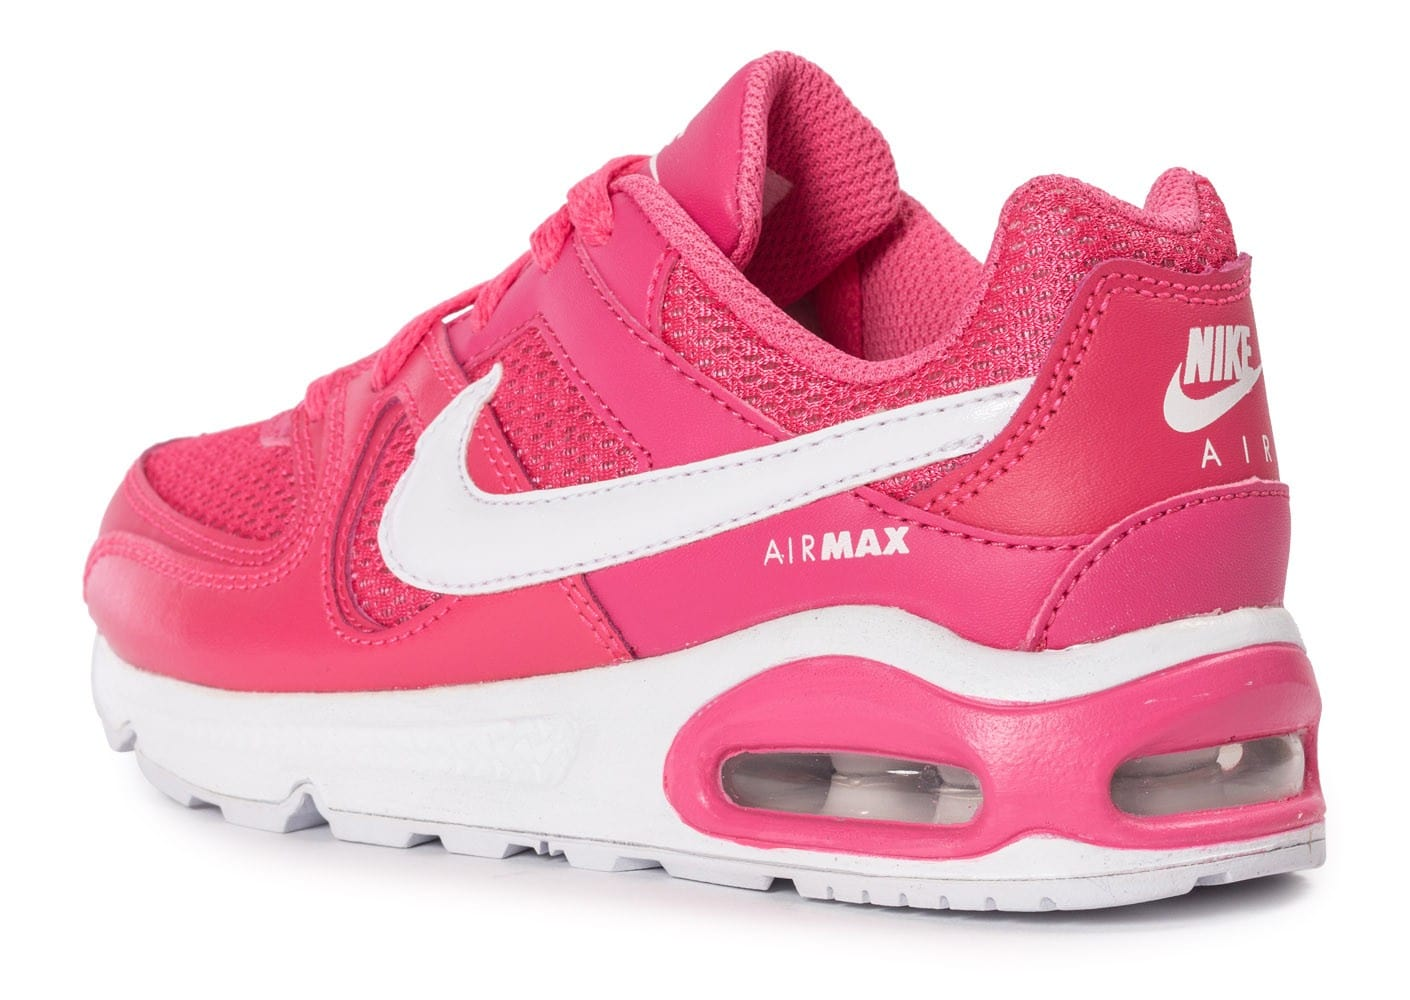 nike air max command enfant rose chaussures chaussures chausport. Black Bedroom Furniture Sets. Home Design Ideas